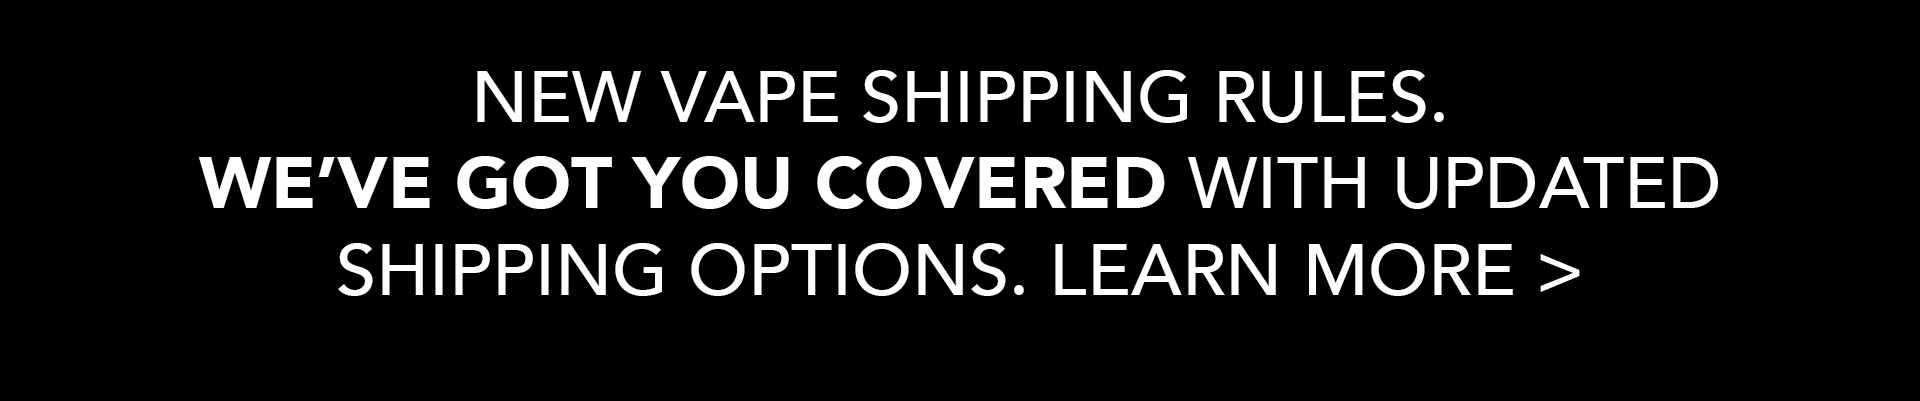 New Vape Shipping Rules Effective March 1, 2021